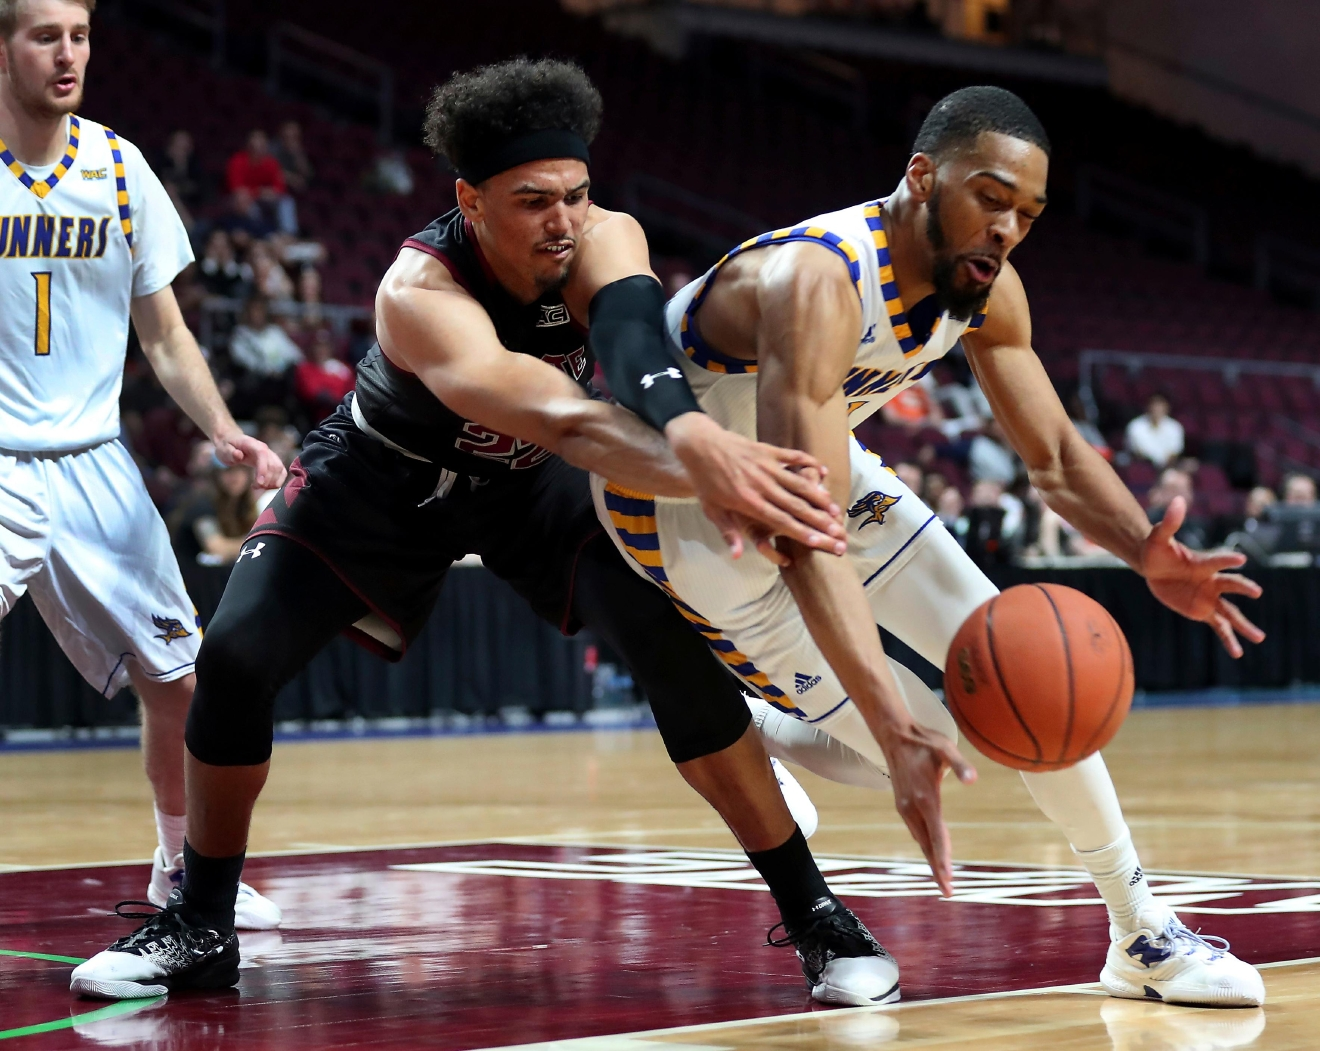 New Mexico State forward Eli Chuha, front left, reaches for a loose ball with Cal State Bakersfield forward Jaylin Airington during the second half of an NCAA college basketball game in the final of the Western Athletic Conference tournament Saturday, March 11, 2017, in Las Vegas. New Mexico State won 70-60. (AP Photo/L.E. Baskow)